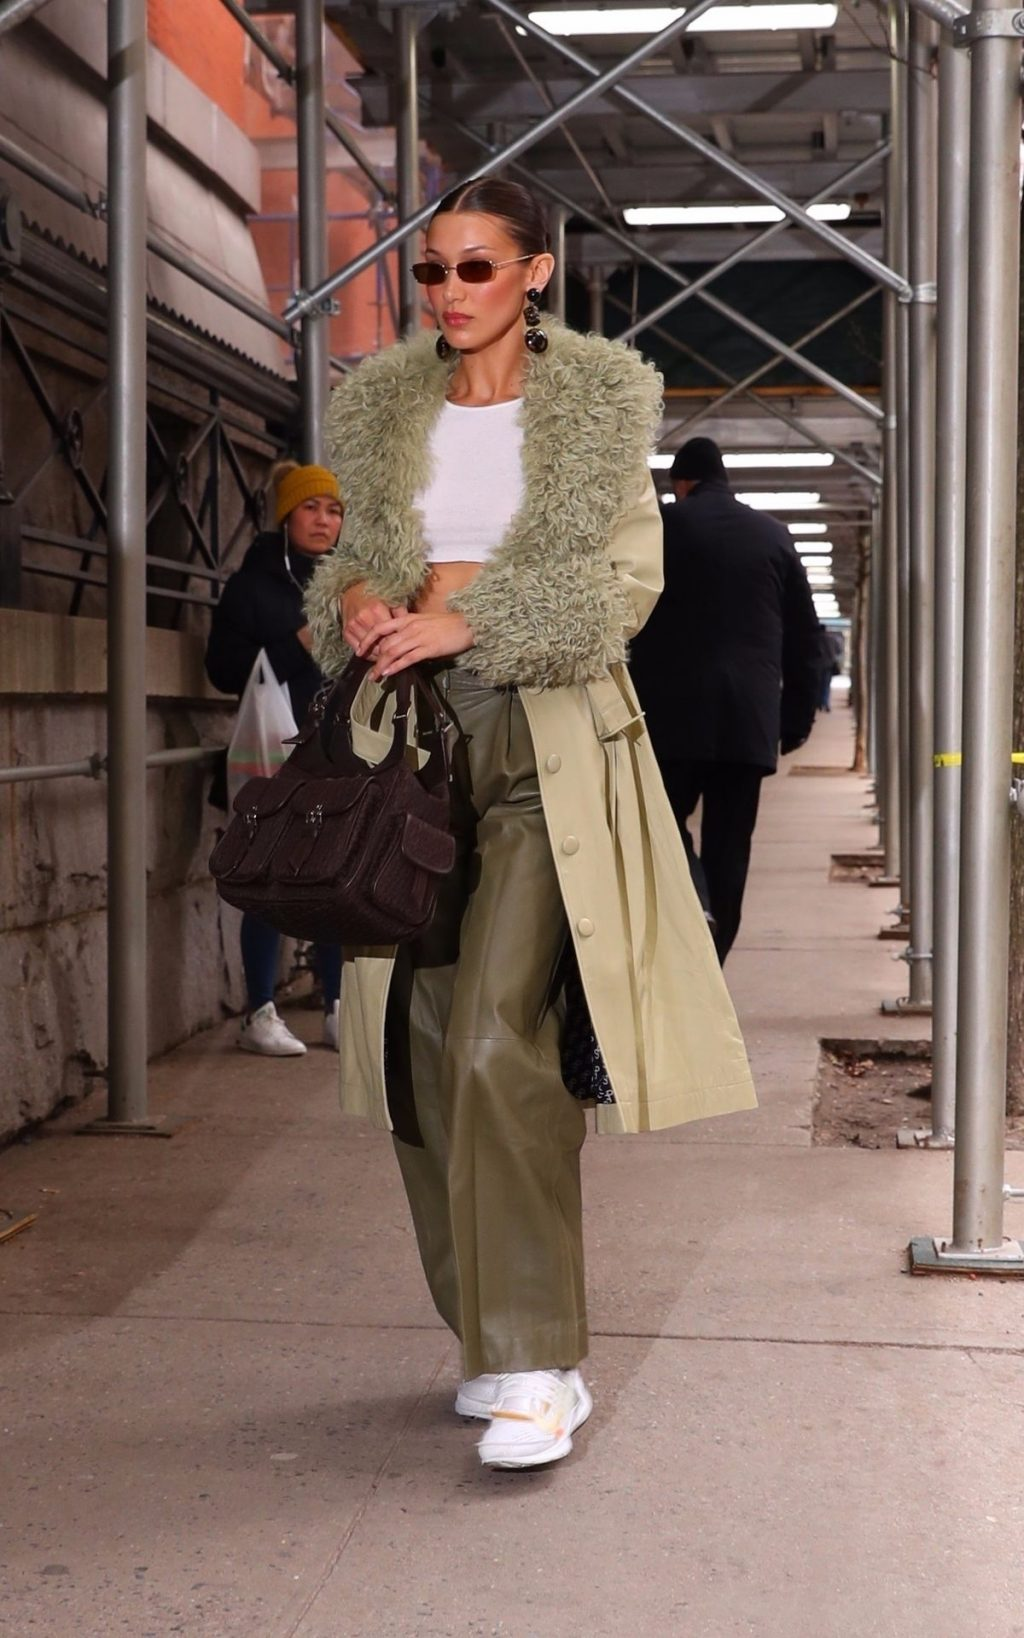 Bella Hadid See through The Fappening Blog 27 1024x1638 - Braless Bella Hadid Arrives at the Park Avenue Armory for the Marc Jacobs Fashion Show (59 Photos)